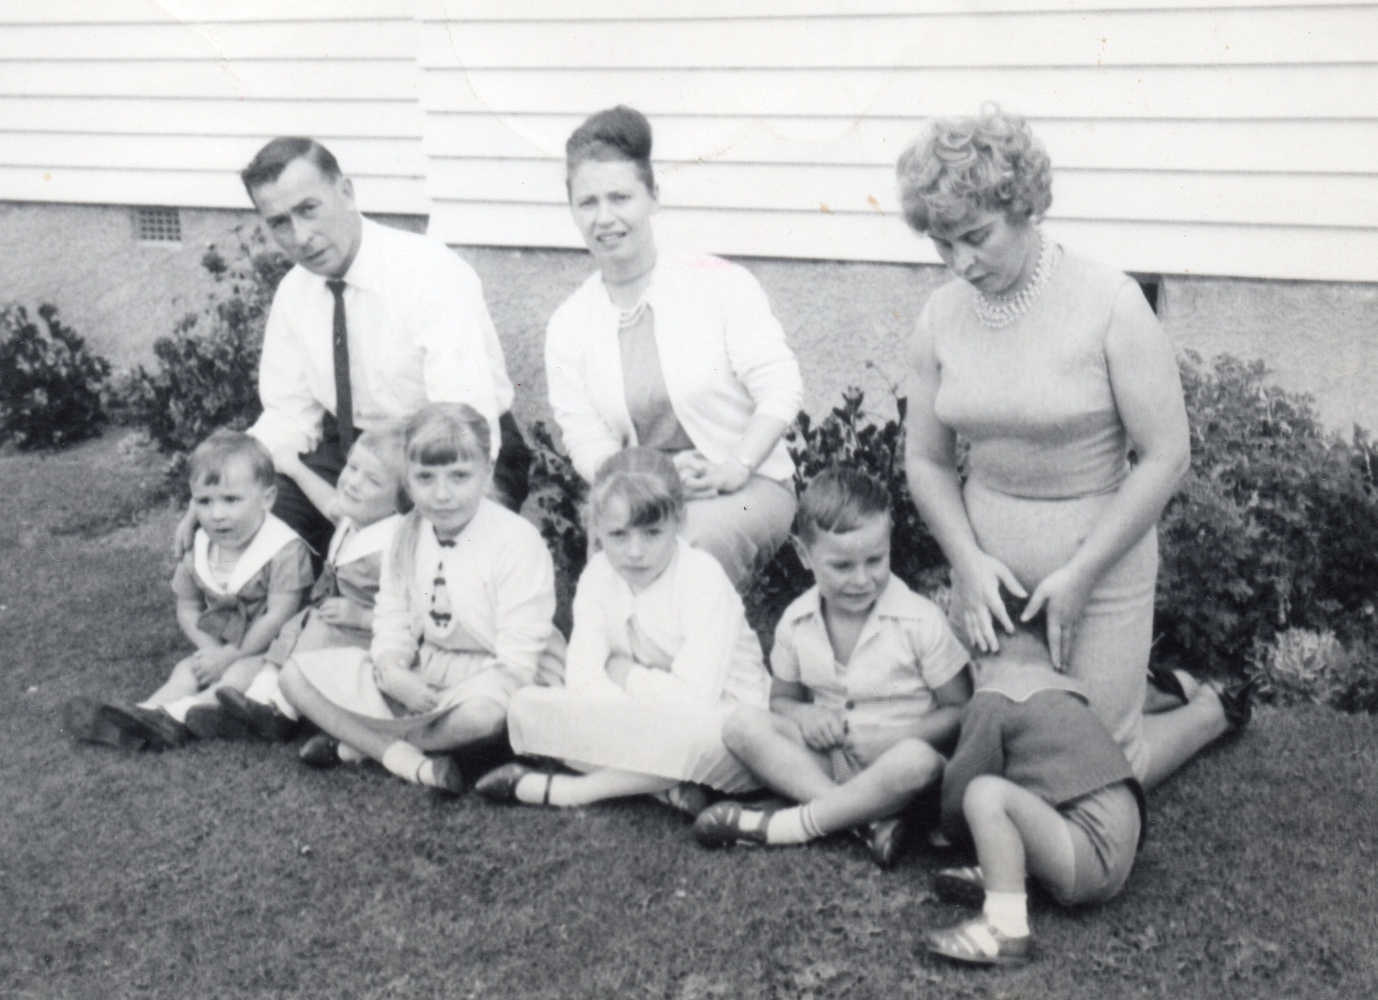 Zioło siblings,  each with two children, sitting on the grass in front of a house.